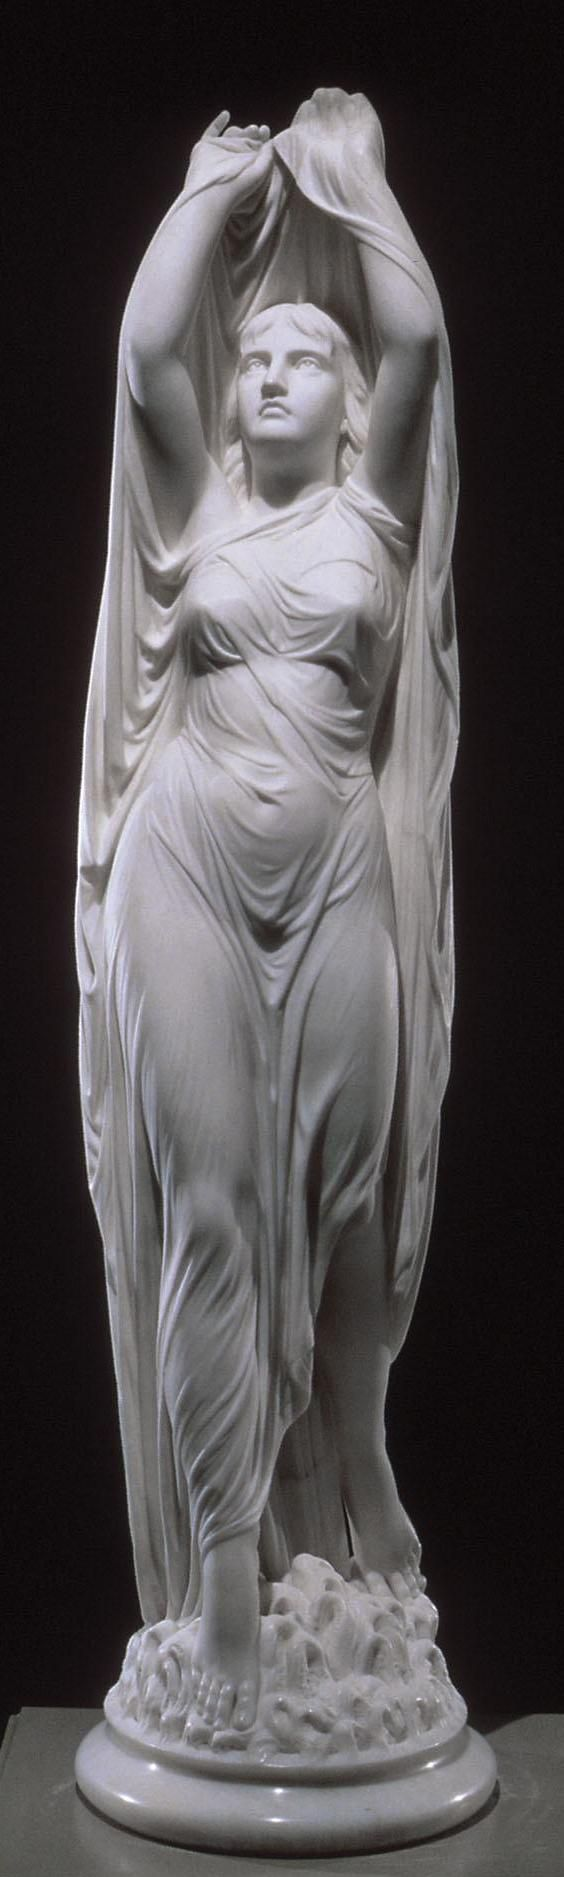 Undine Rising from the Waters by Chauncey Bradley (ca. 1880-1882).: